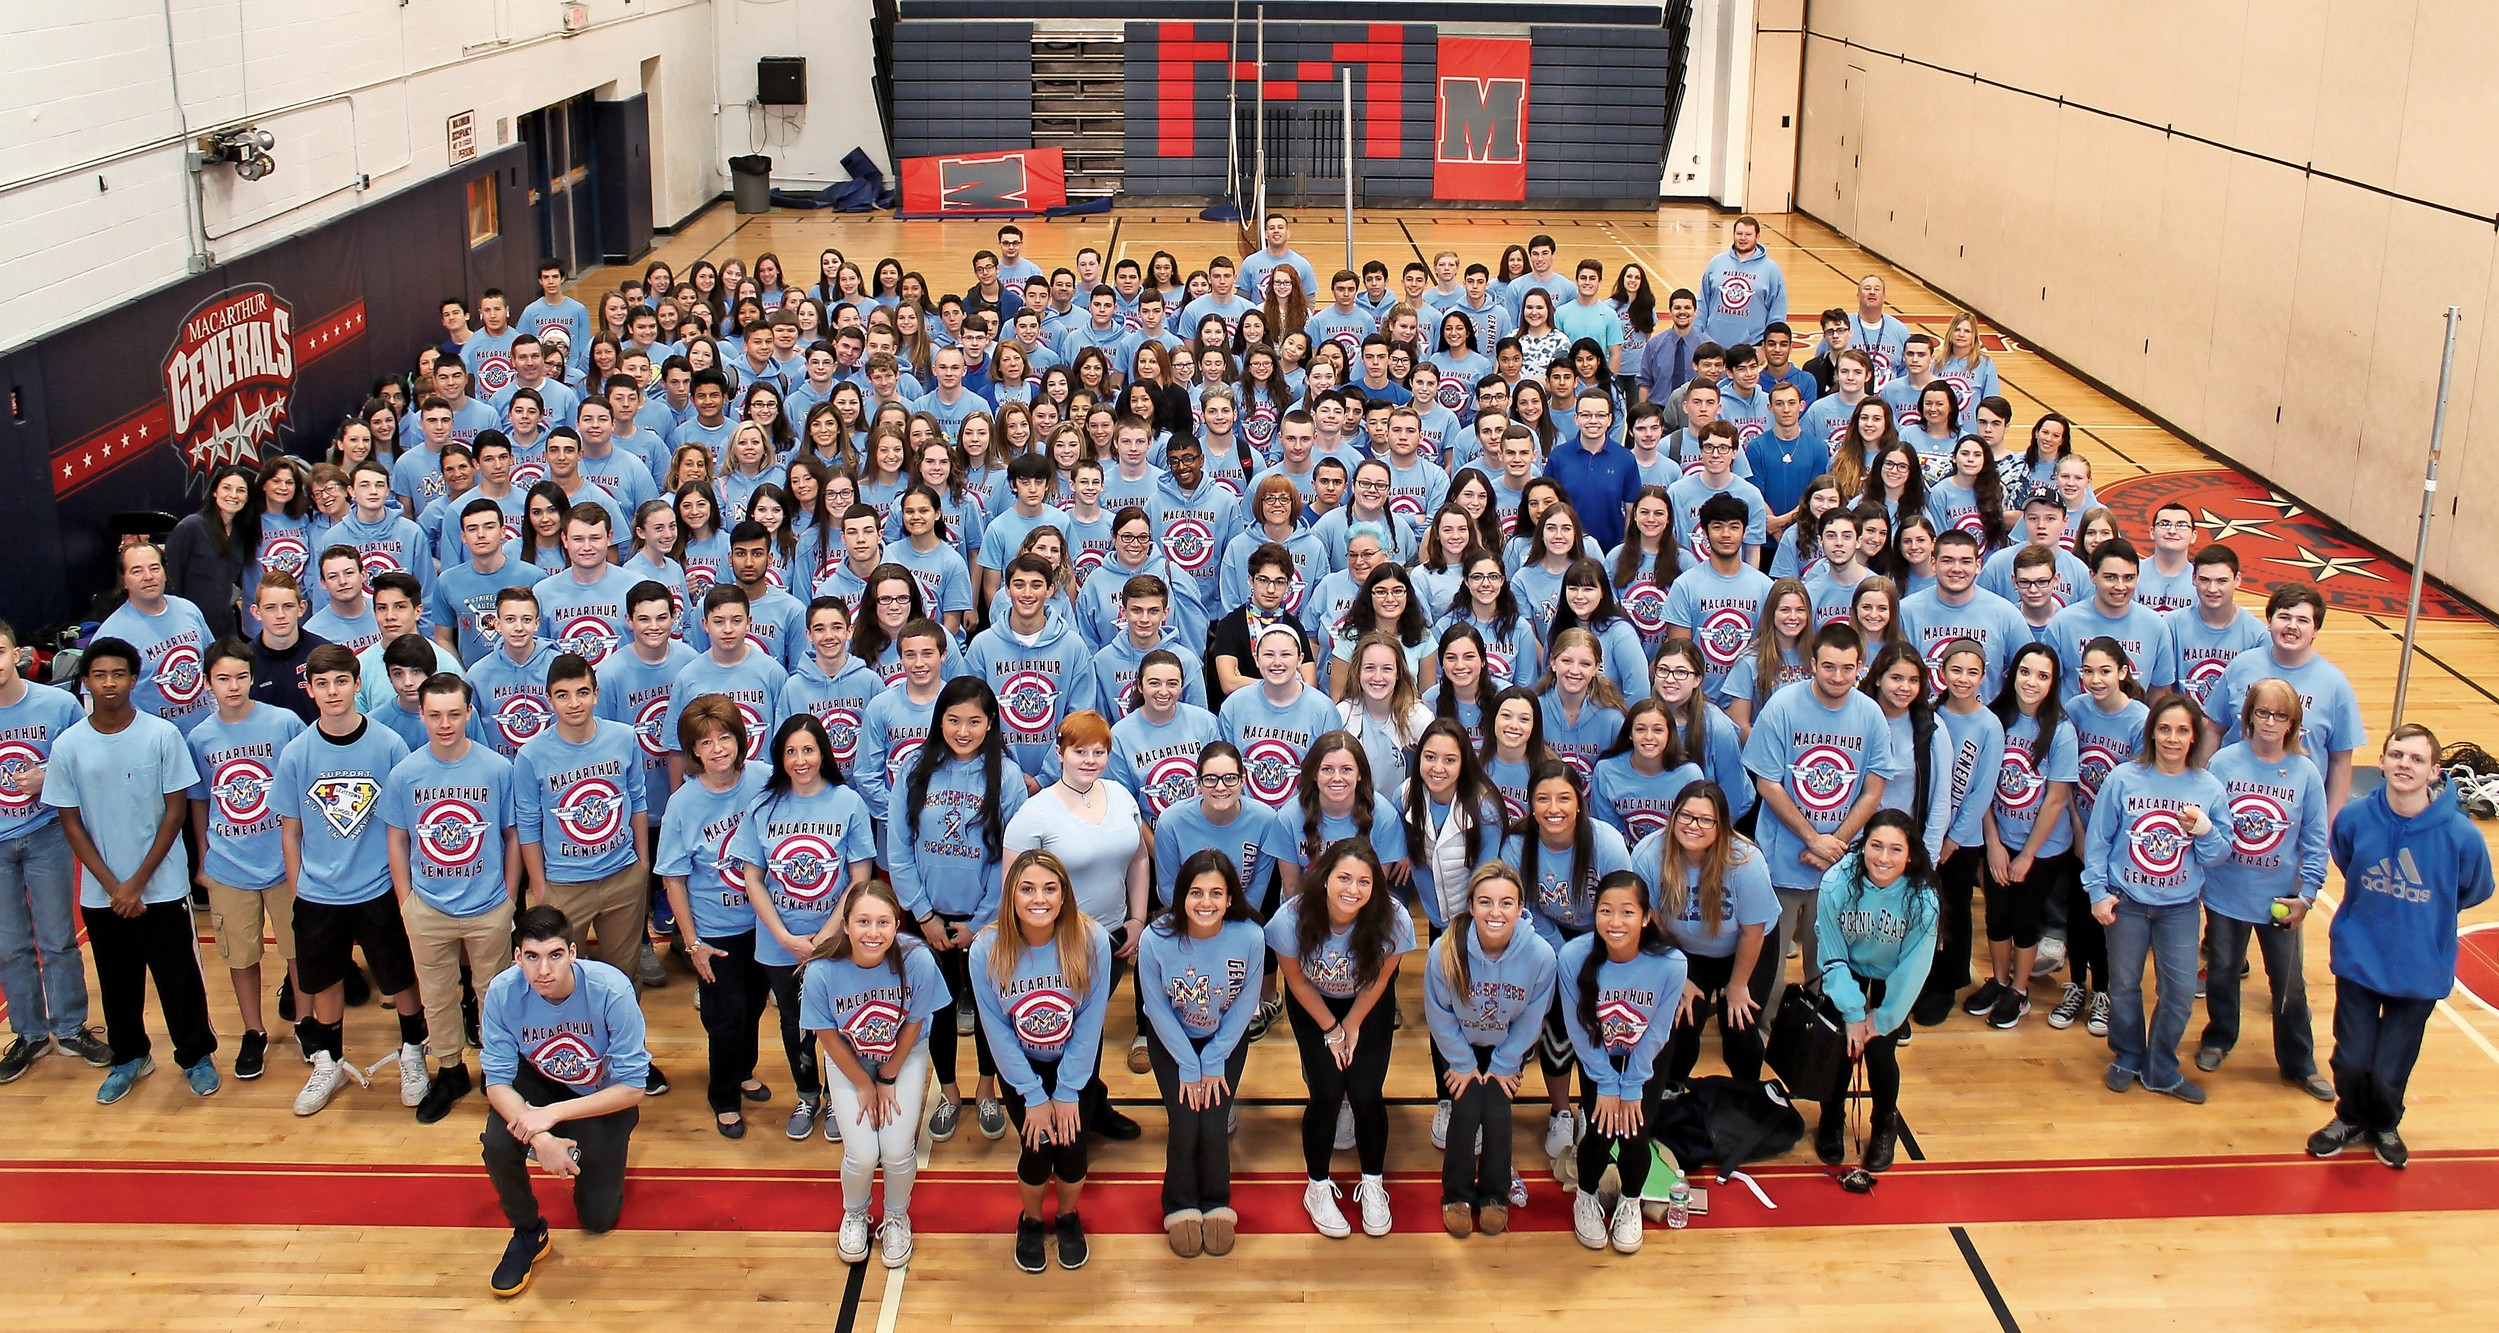 MacArthur students, teachers and staff created a sea of blue at their celebration of World Autism Awareness Day.